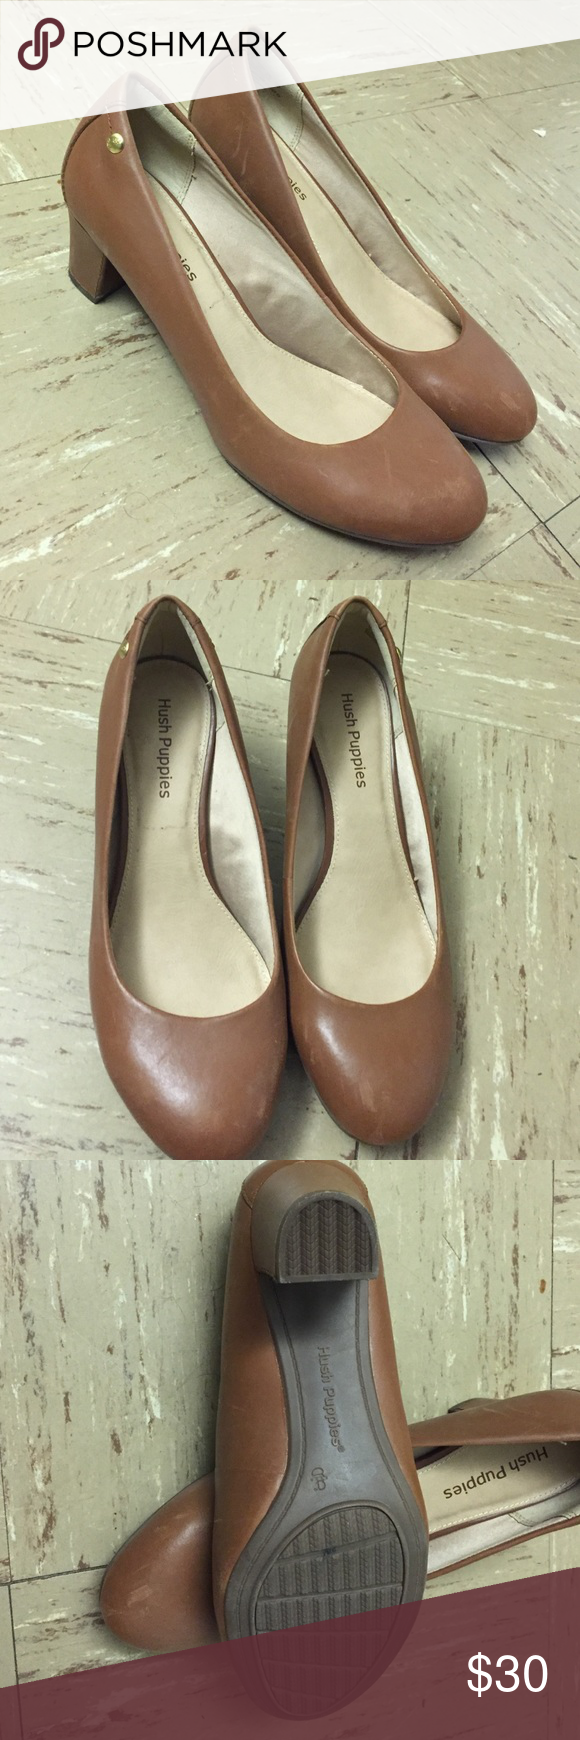 Hush puppies women shoes Only used a few times. Very nice